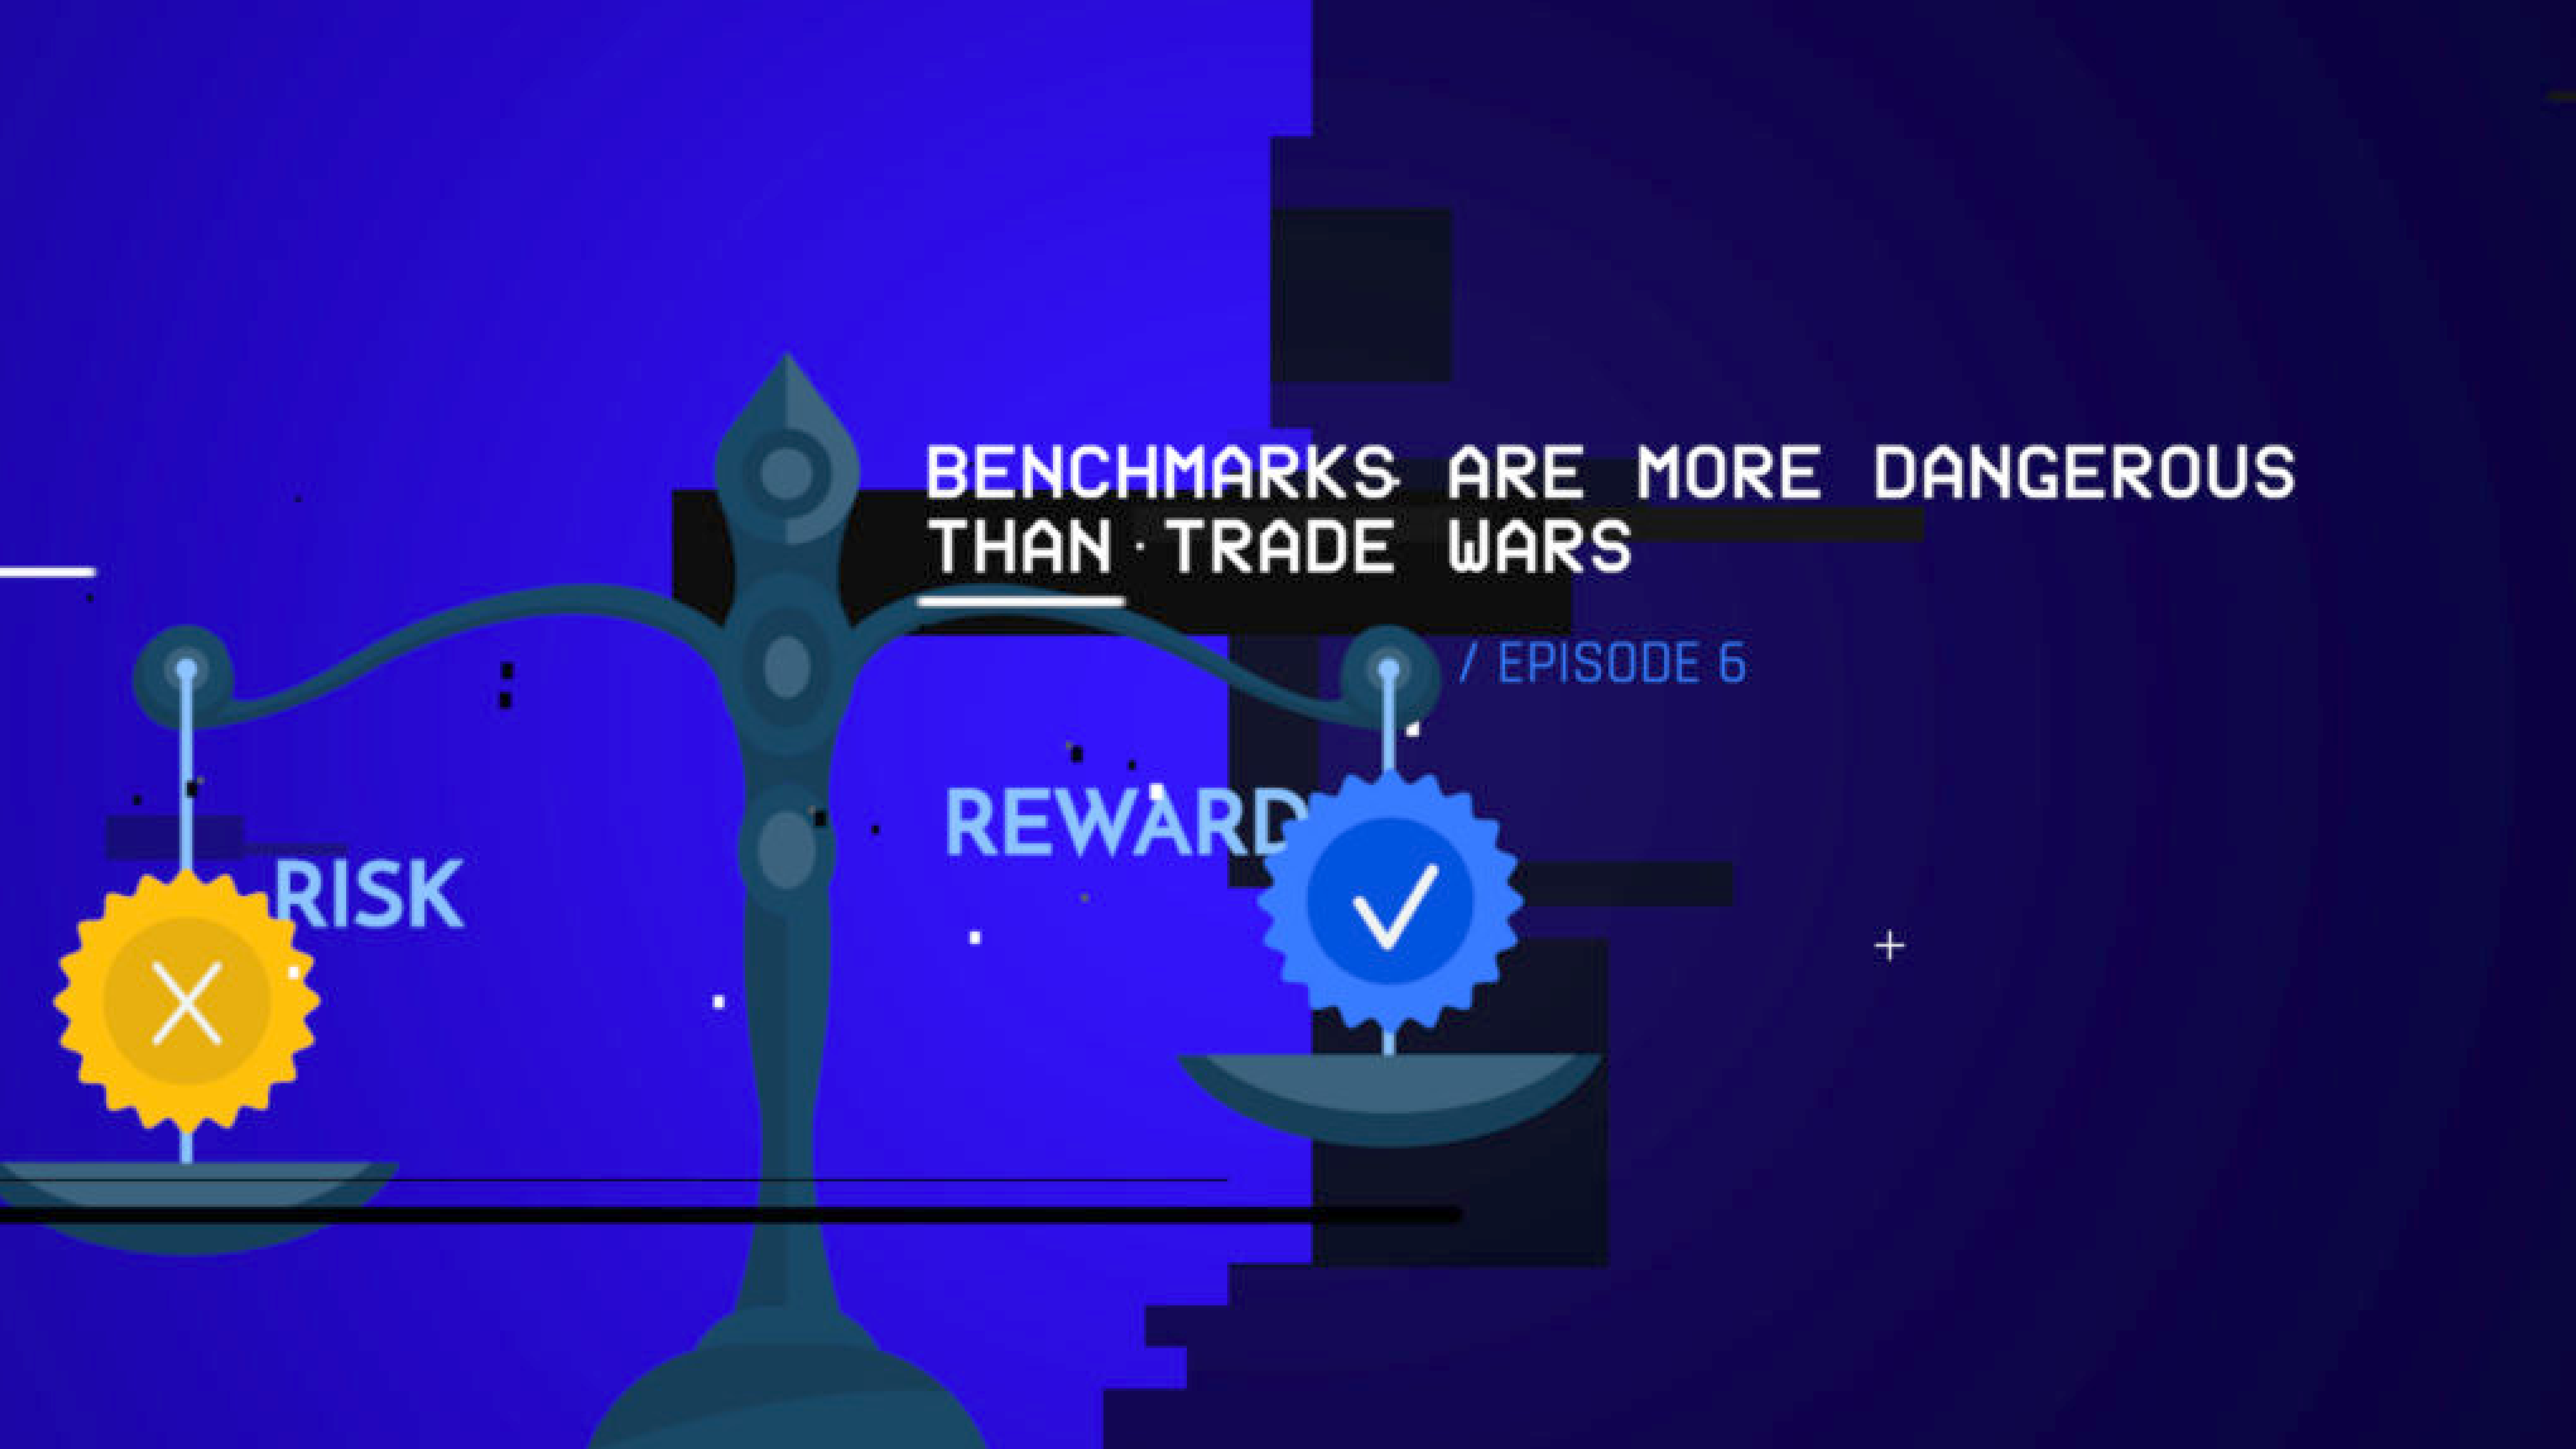 Benchmarks Are More Dangerous Than Trade Wars (S1 E6)